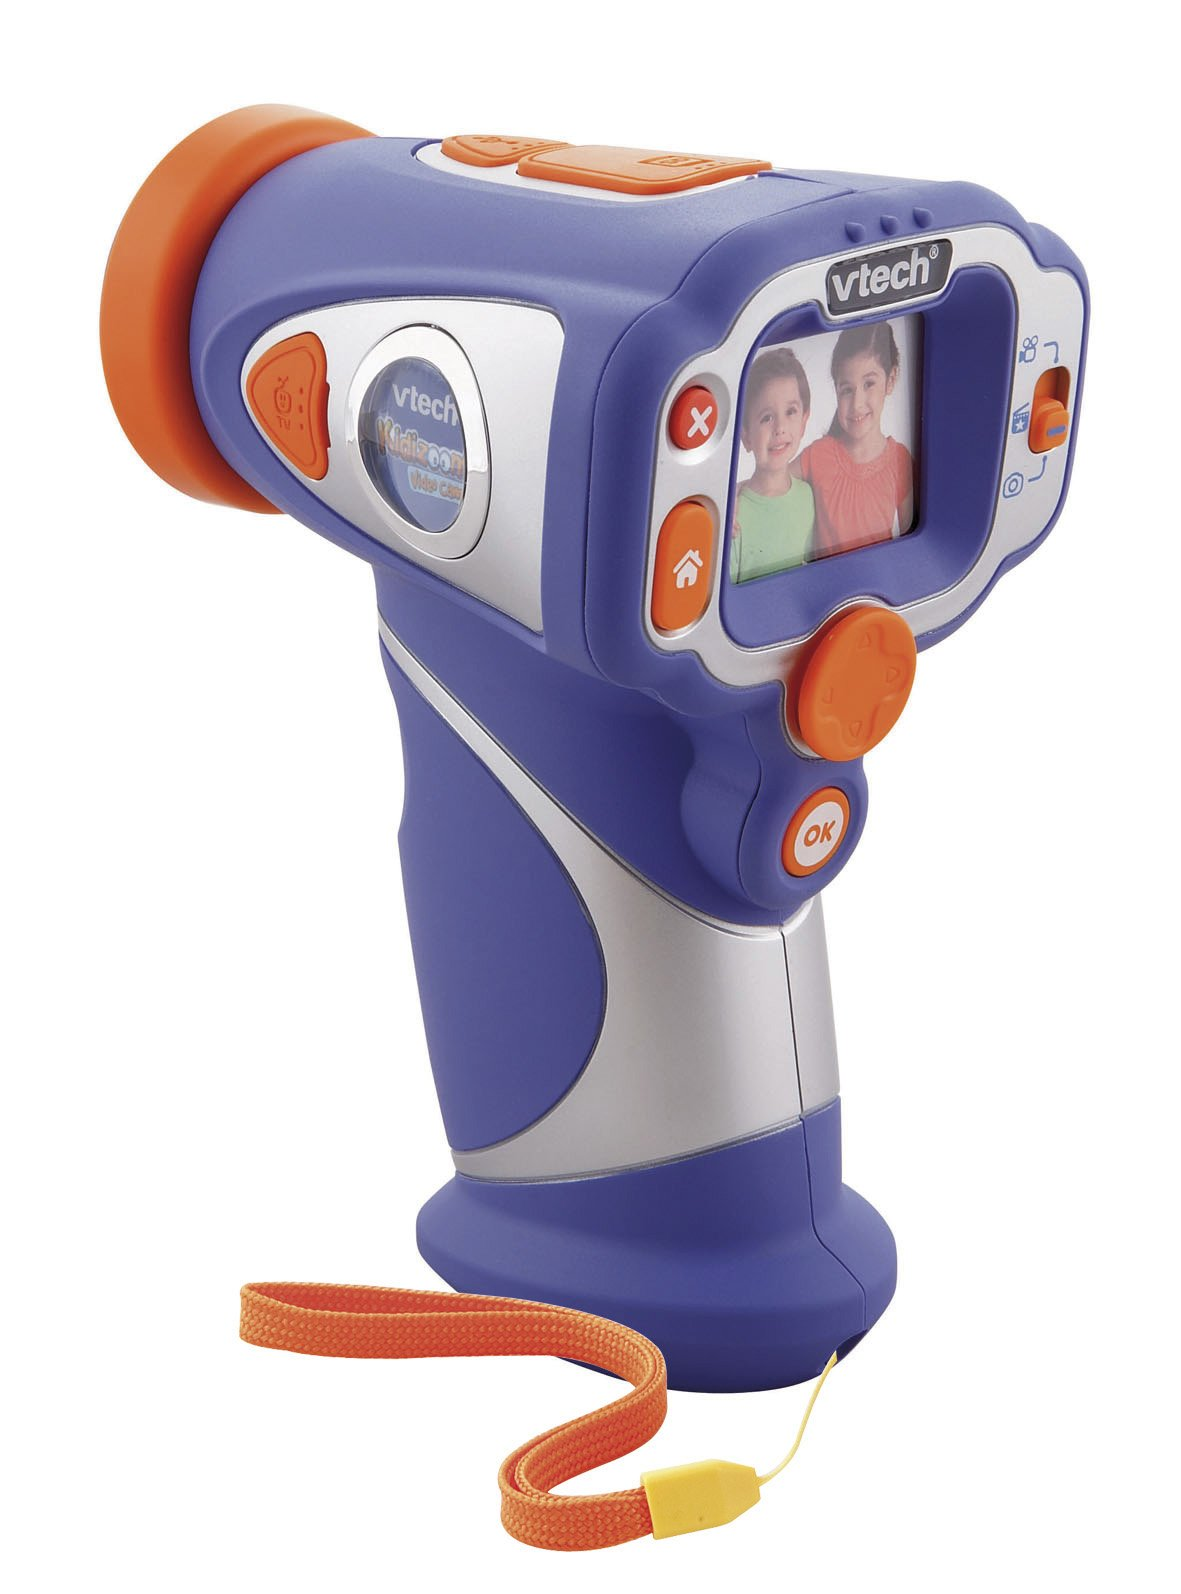 vtech kidizoom videocam une camera enfant pour les juniors. Black Bedroom Furniture Sets. Home Design Ideas